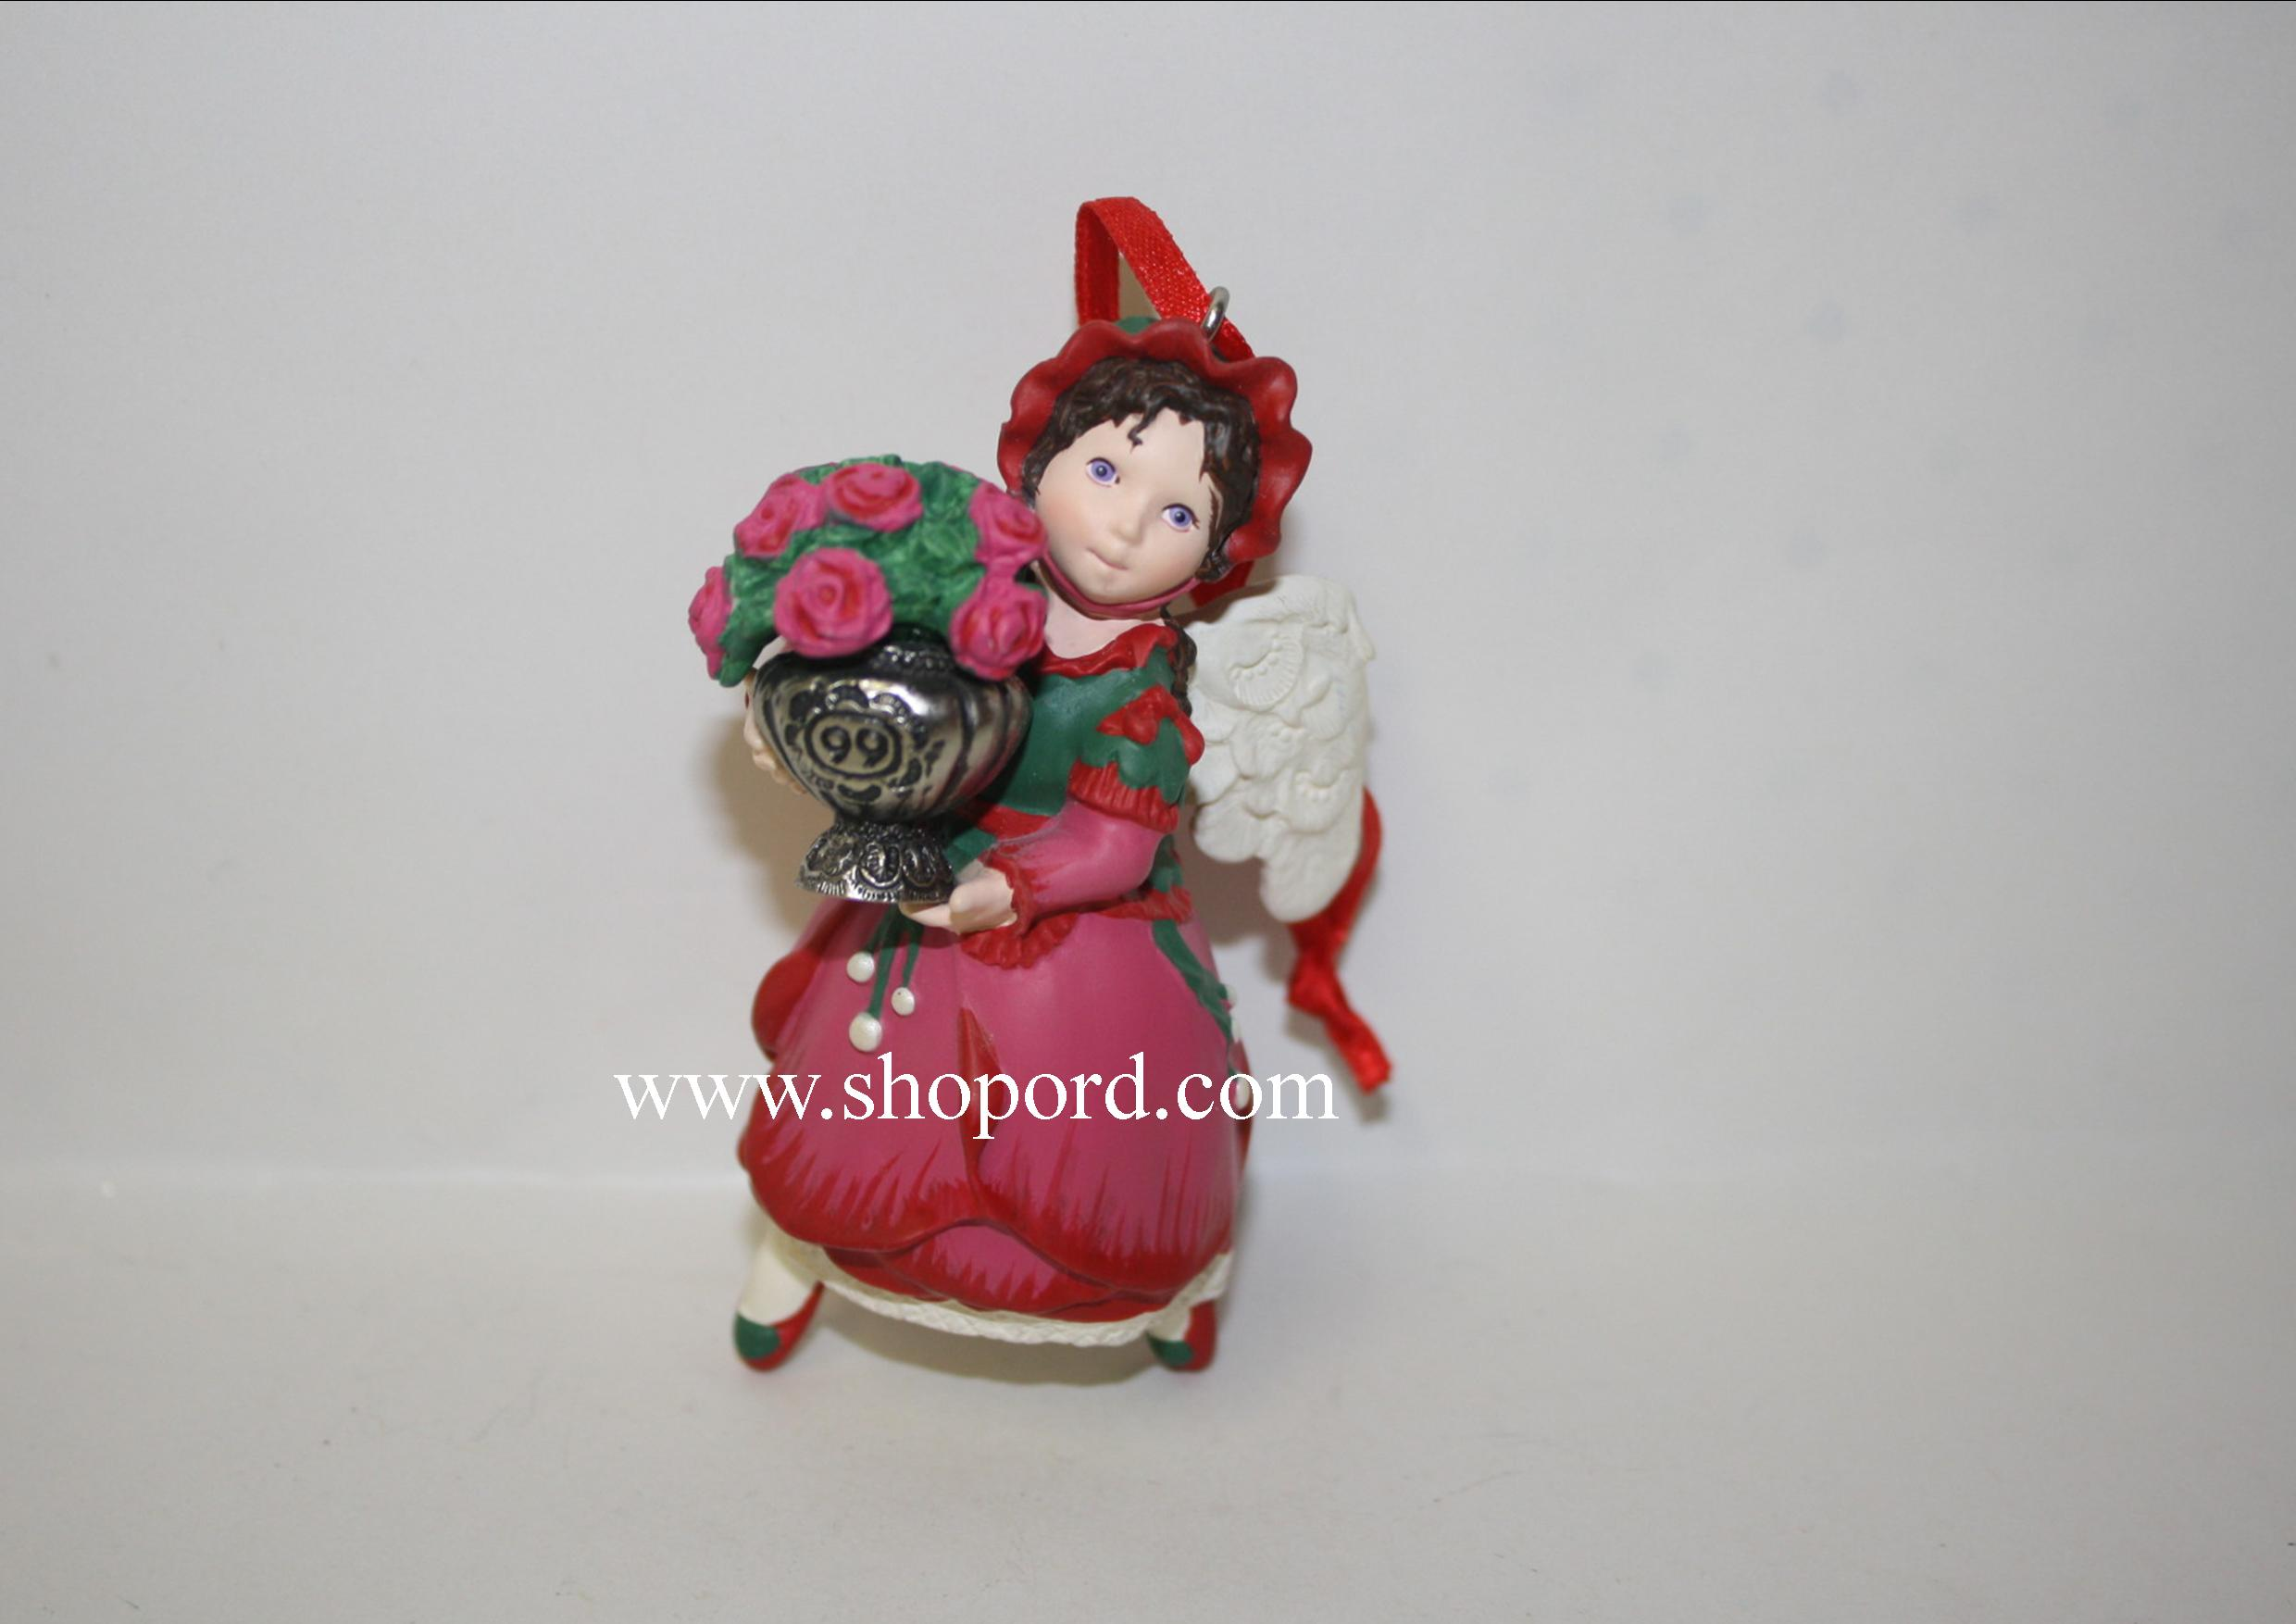 Hallmark 1999 Rose Angel Ornament 4th And Final In The Language Of Flowers Series QX6289